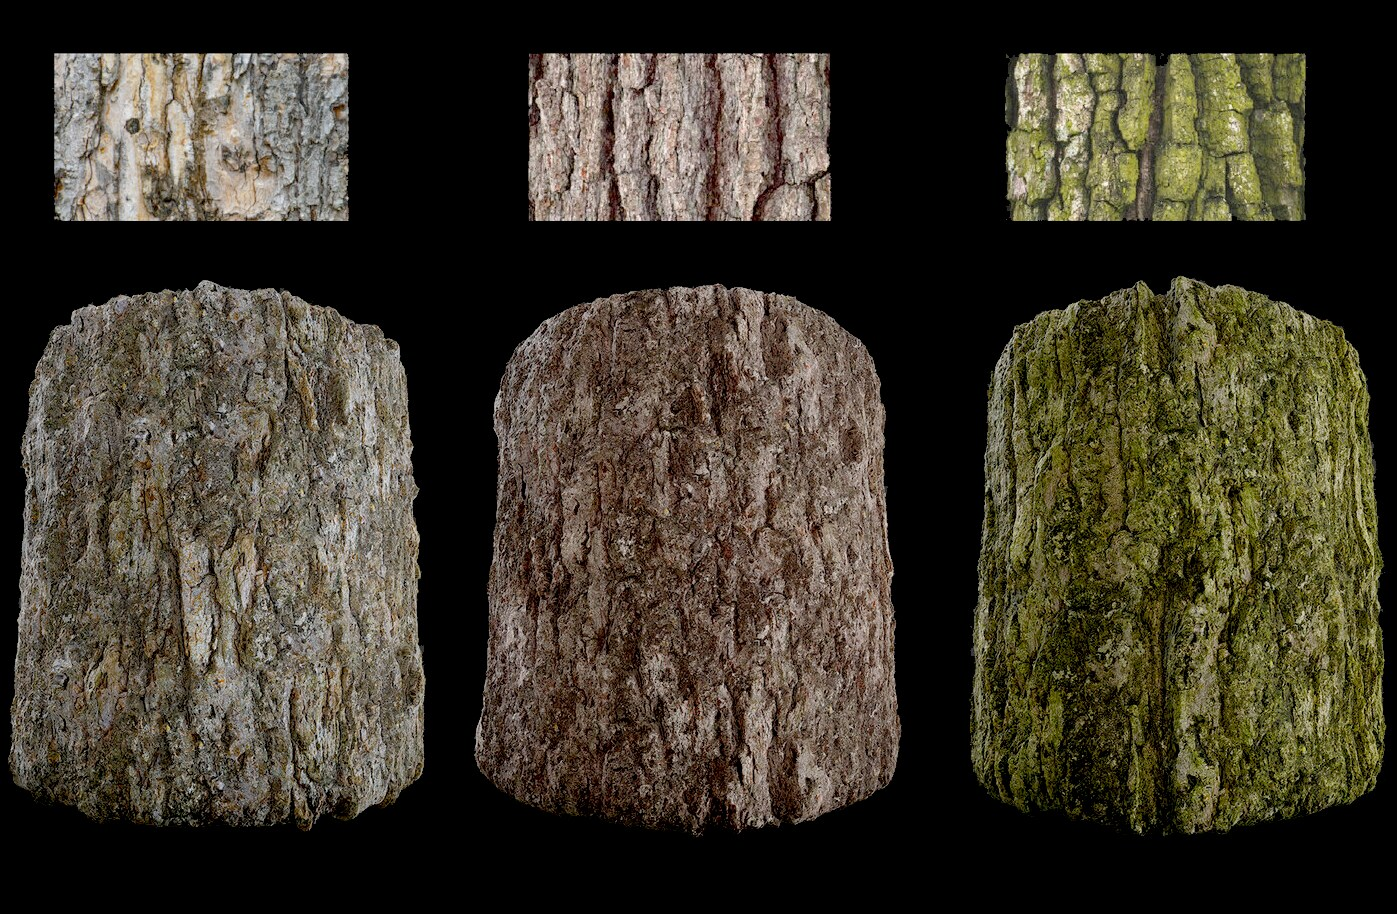 Variations of tree bark material created